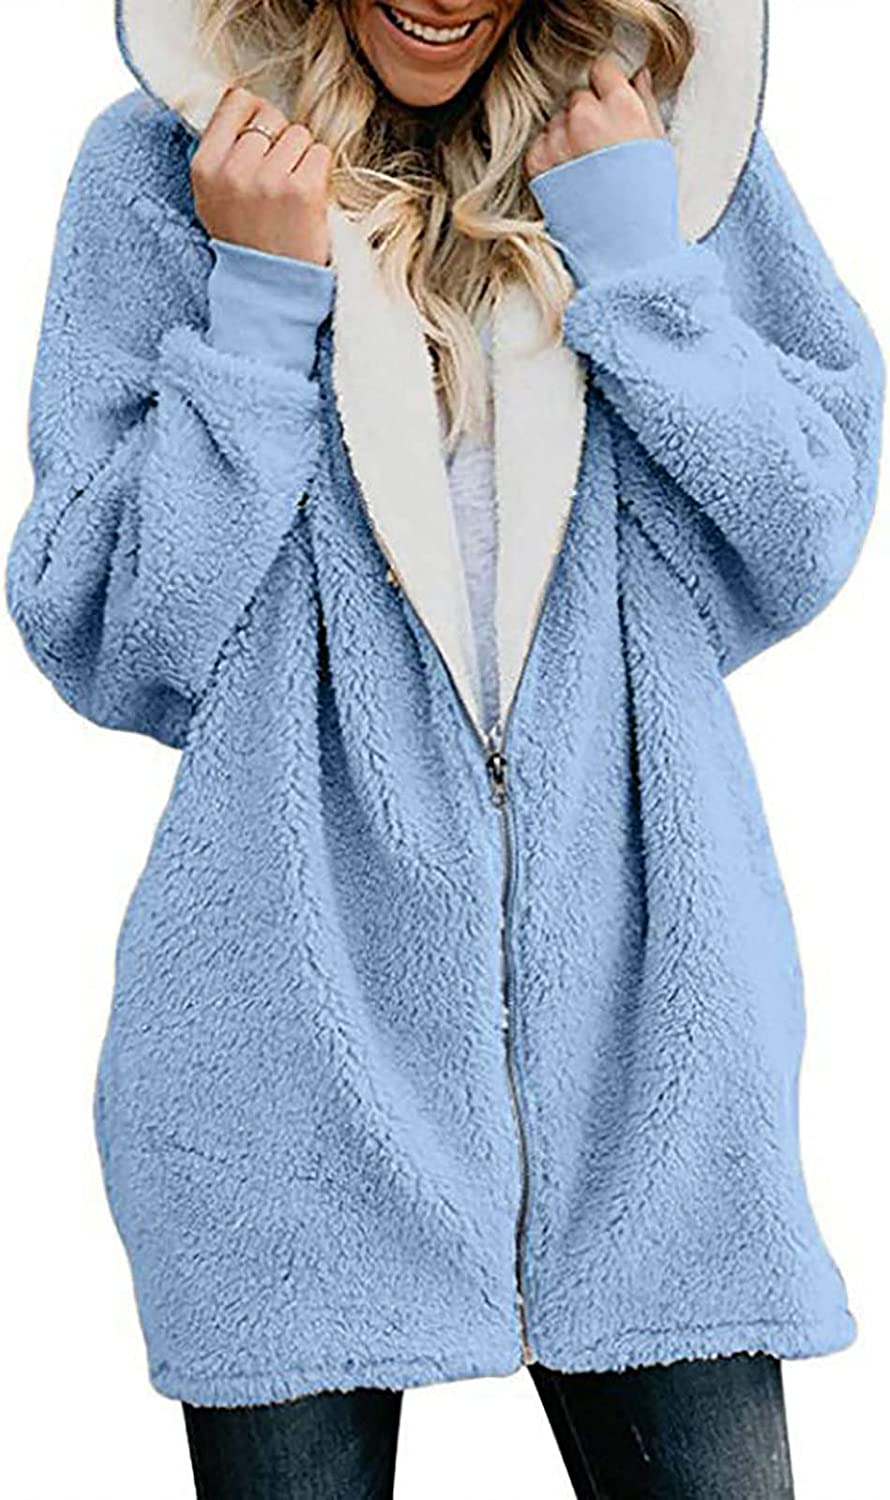 Womens Winter Fuzzy Coat Zip Up Hoodies Jacket Long Sleeve Sherpa Lined Warm Outwear Soft Comfortable Casual Loose Top